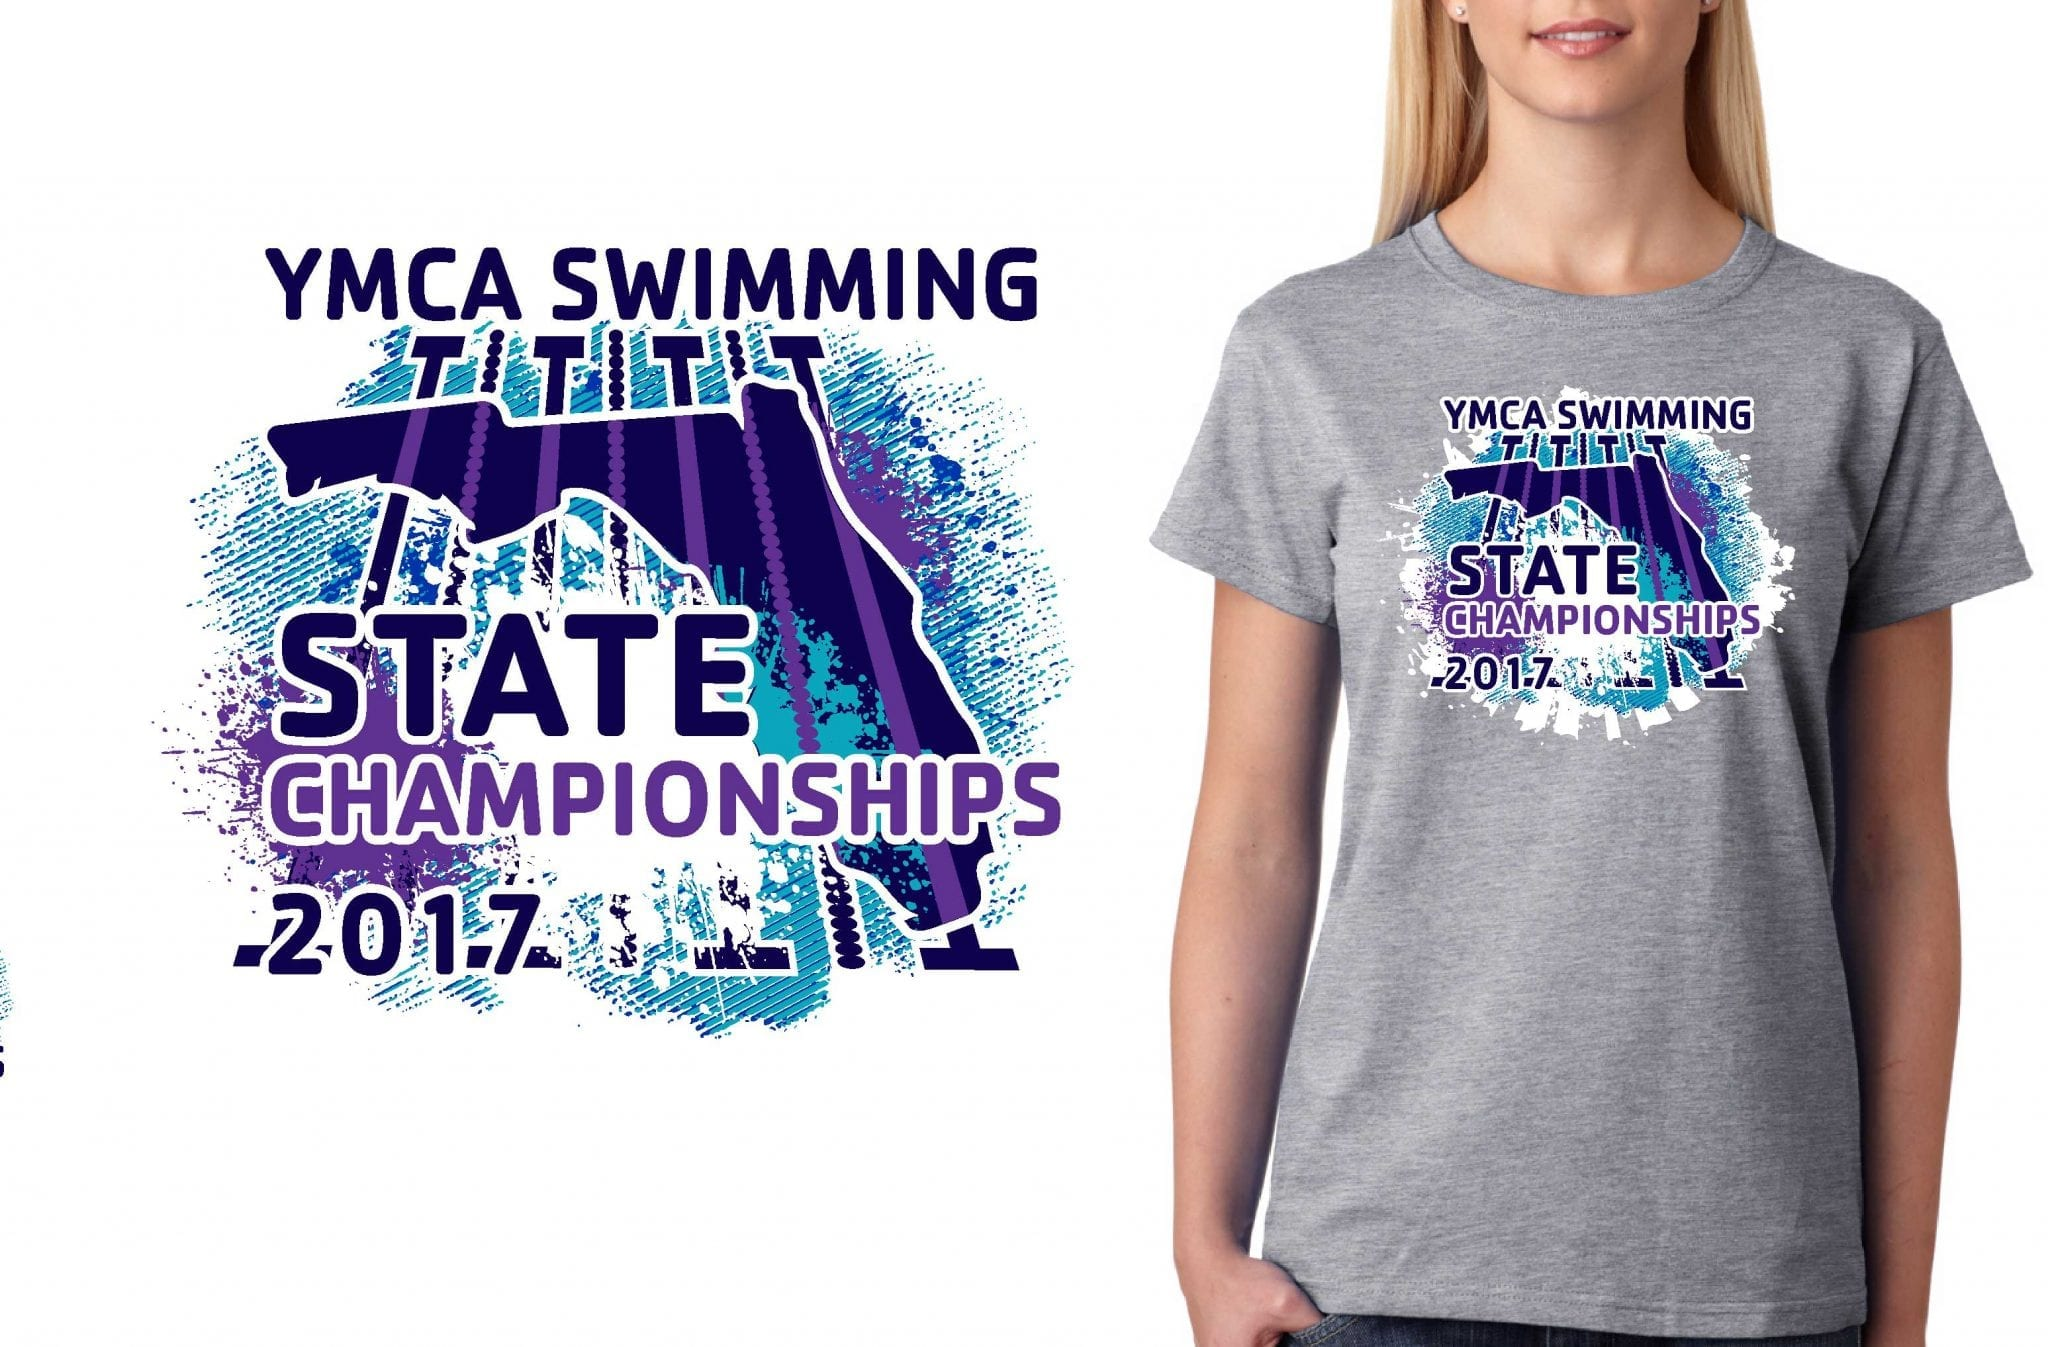 SWIMMING TSHIRT LOGO DESIGN YMCA-Swimming-State-Championships UrArtStudio